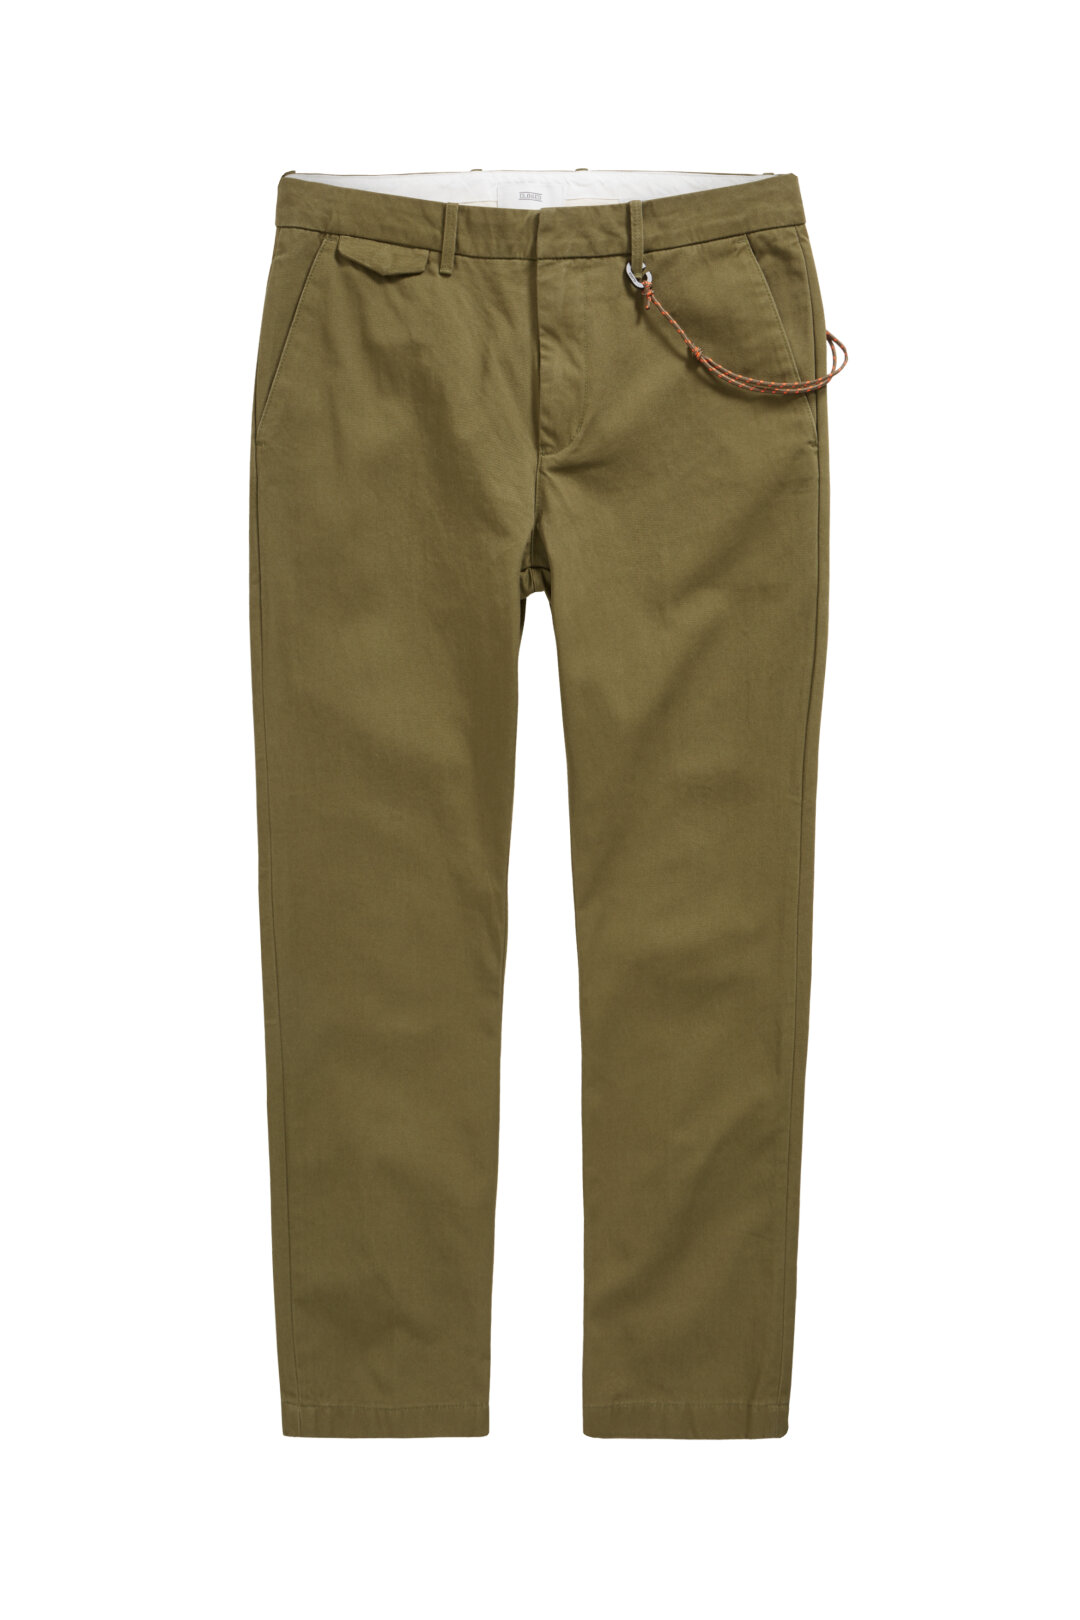 Atelier Cropped Japanese Chino